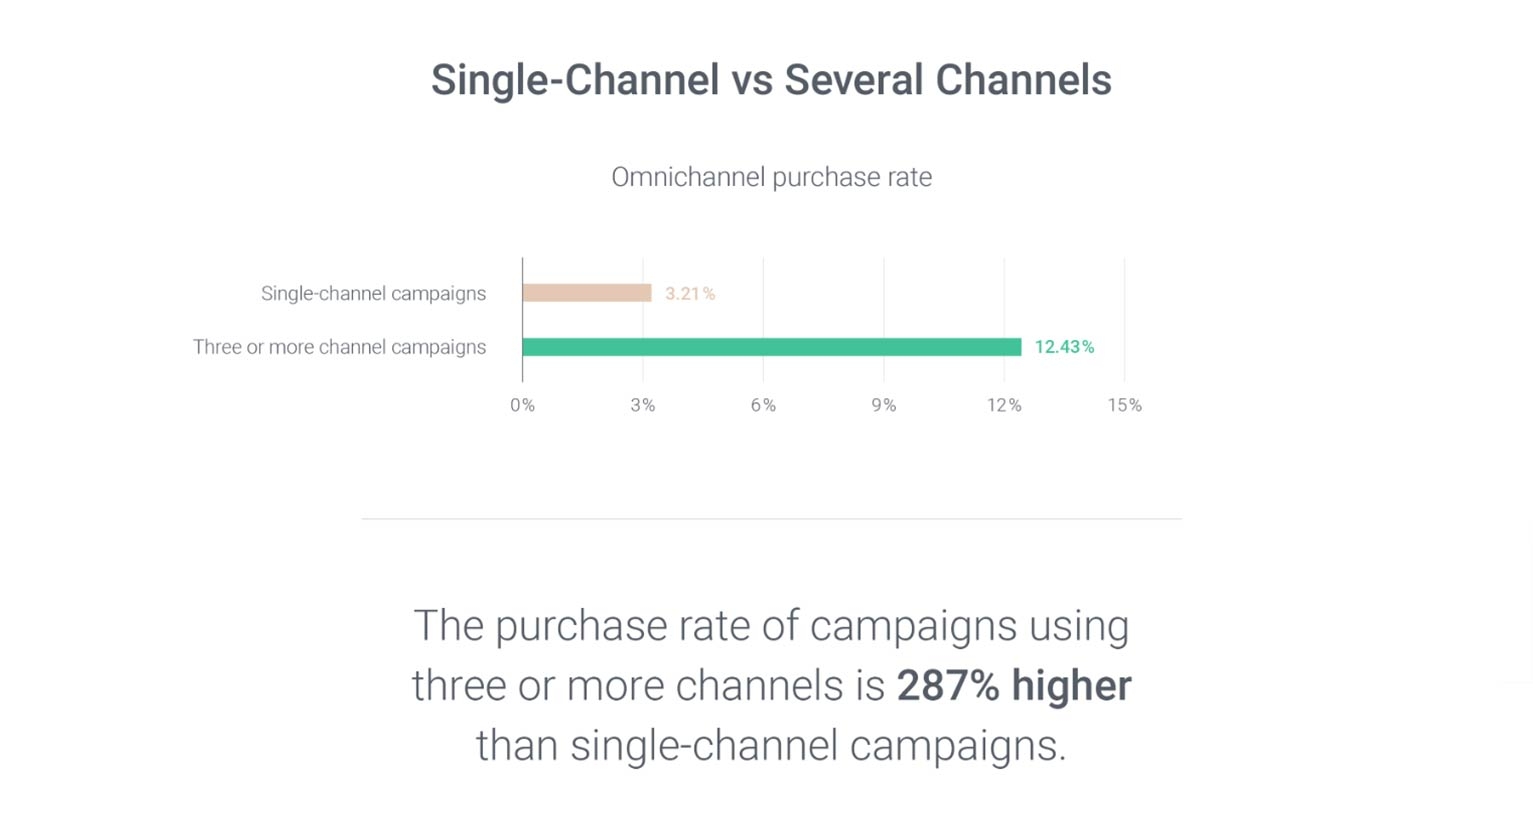 Graph showing customer purchase rates with 3 or more marketing channels is 12.43%, while only 3.21% for 1 channel.